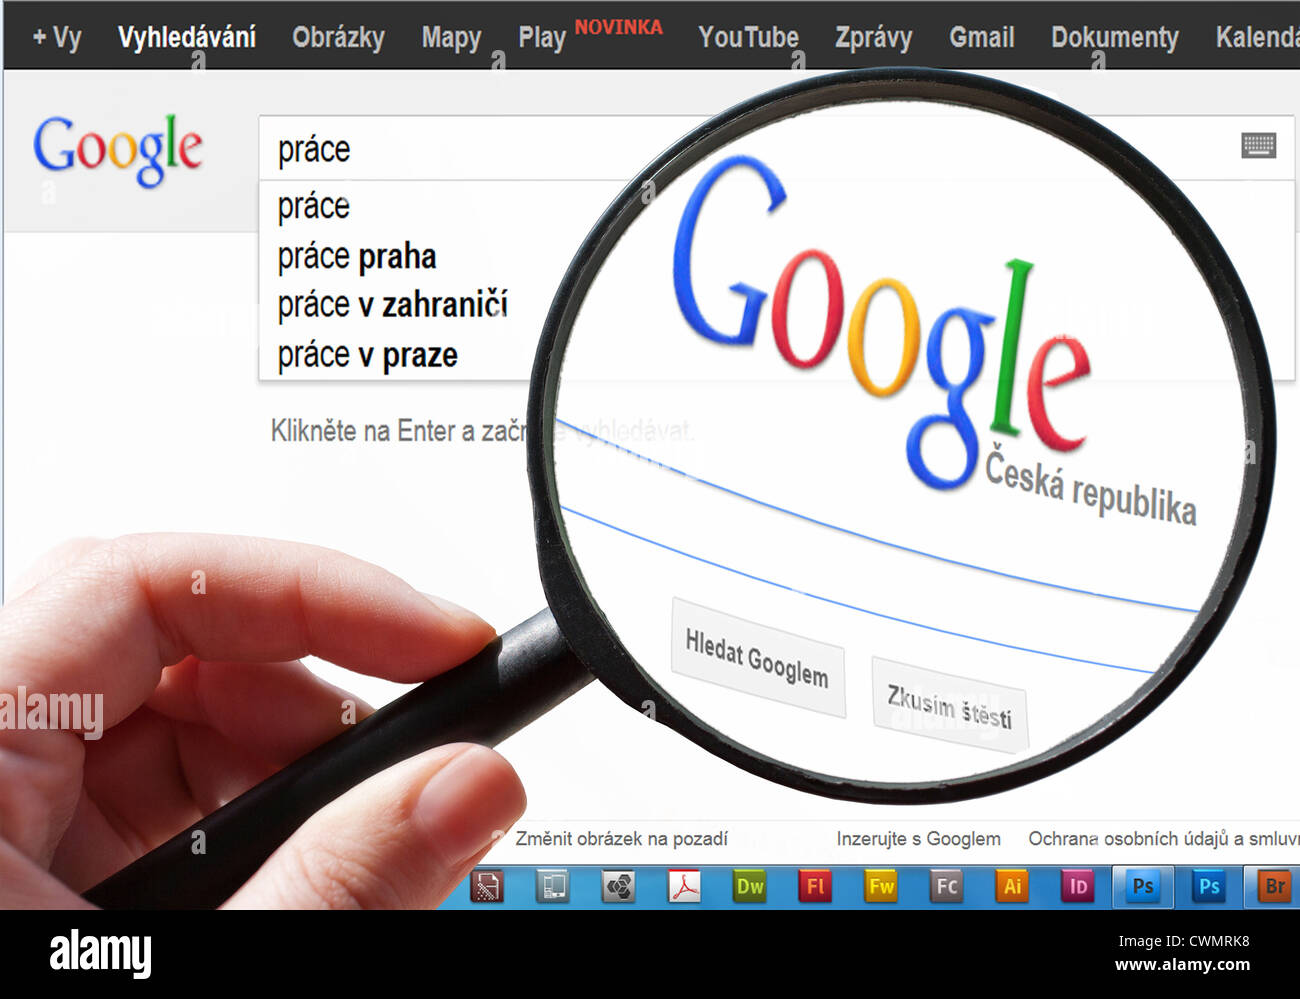 Czech Google - search for job in internet - Stock Image